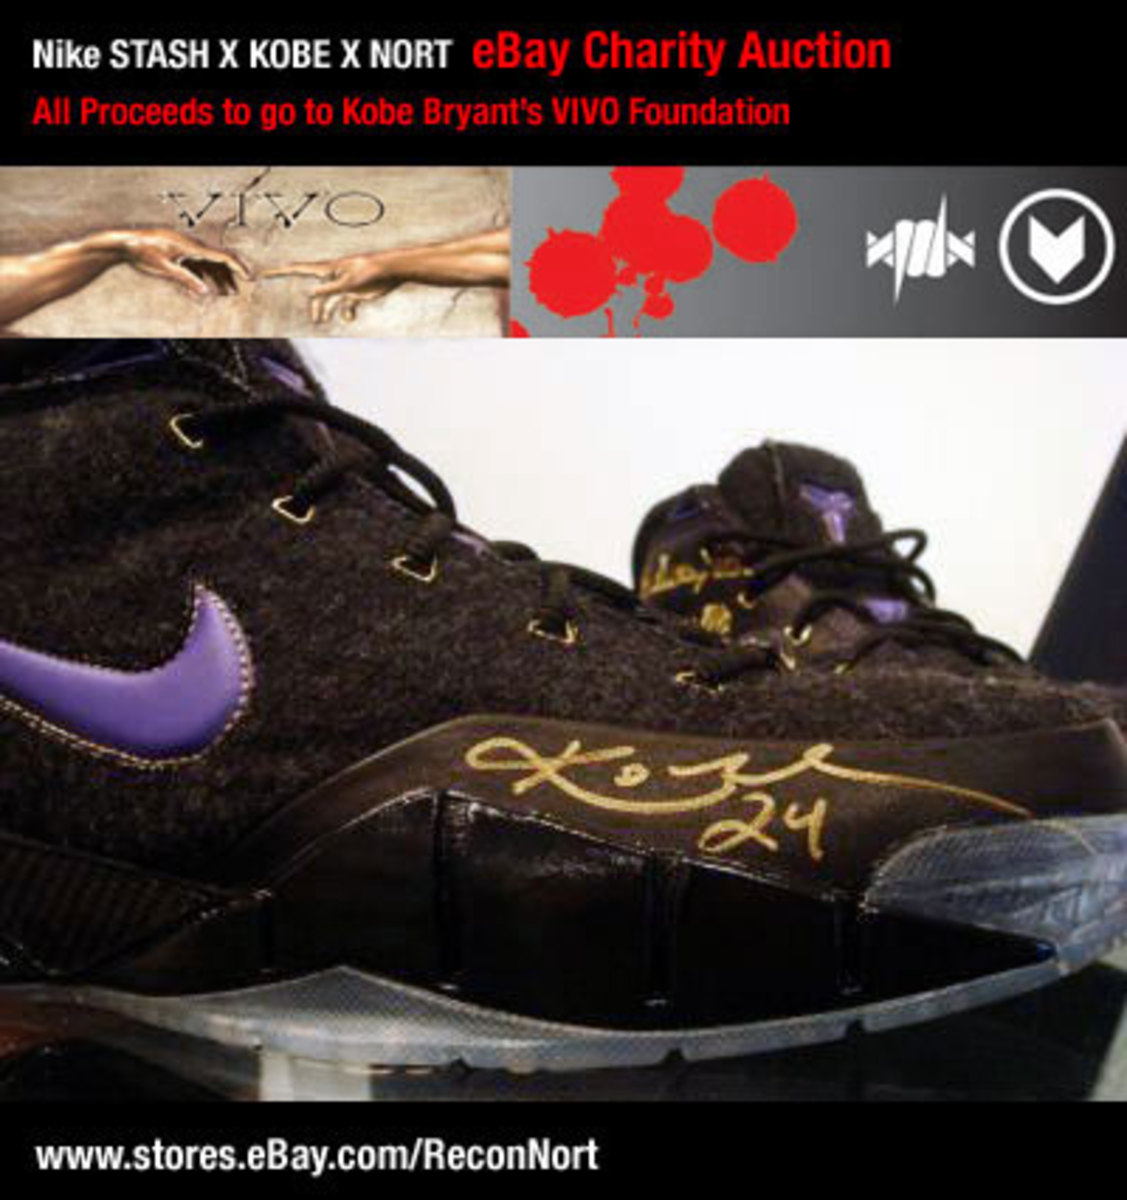 nort_kobe_charity_auction.jpg